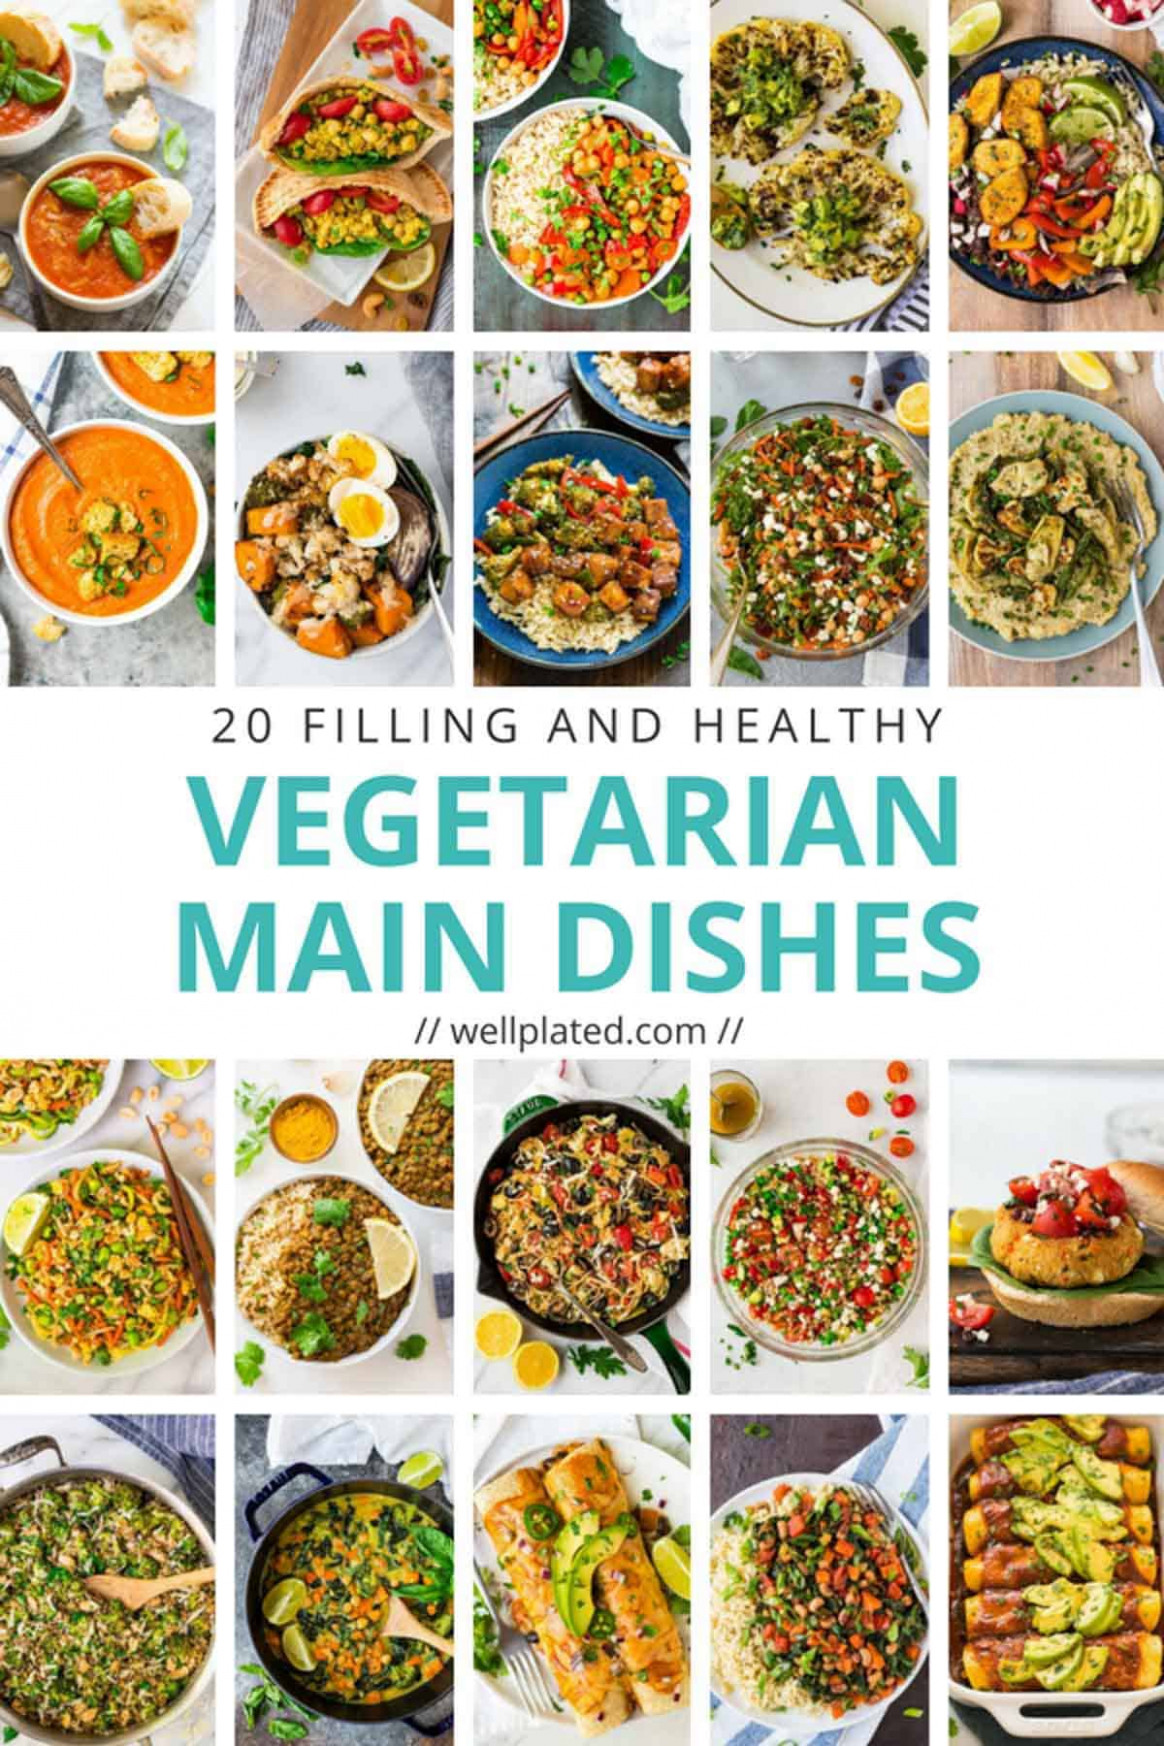 13 Healthy Vegetarian Dinner Recipes - Recipes Vegetarian Dinner